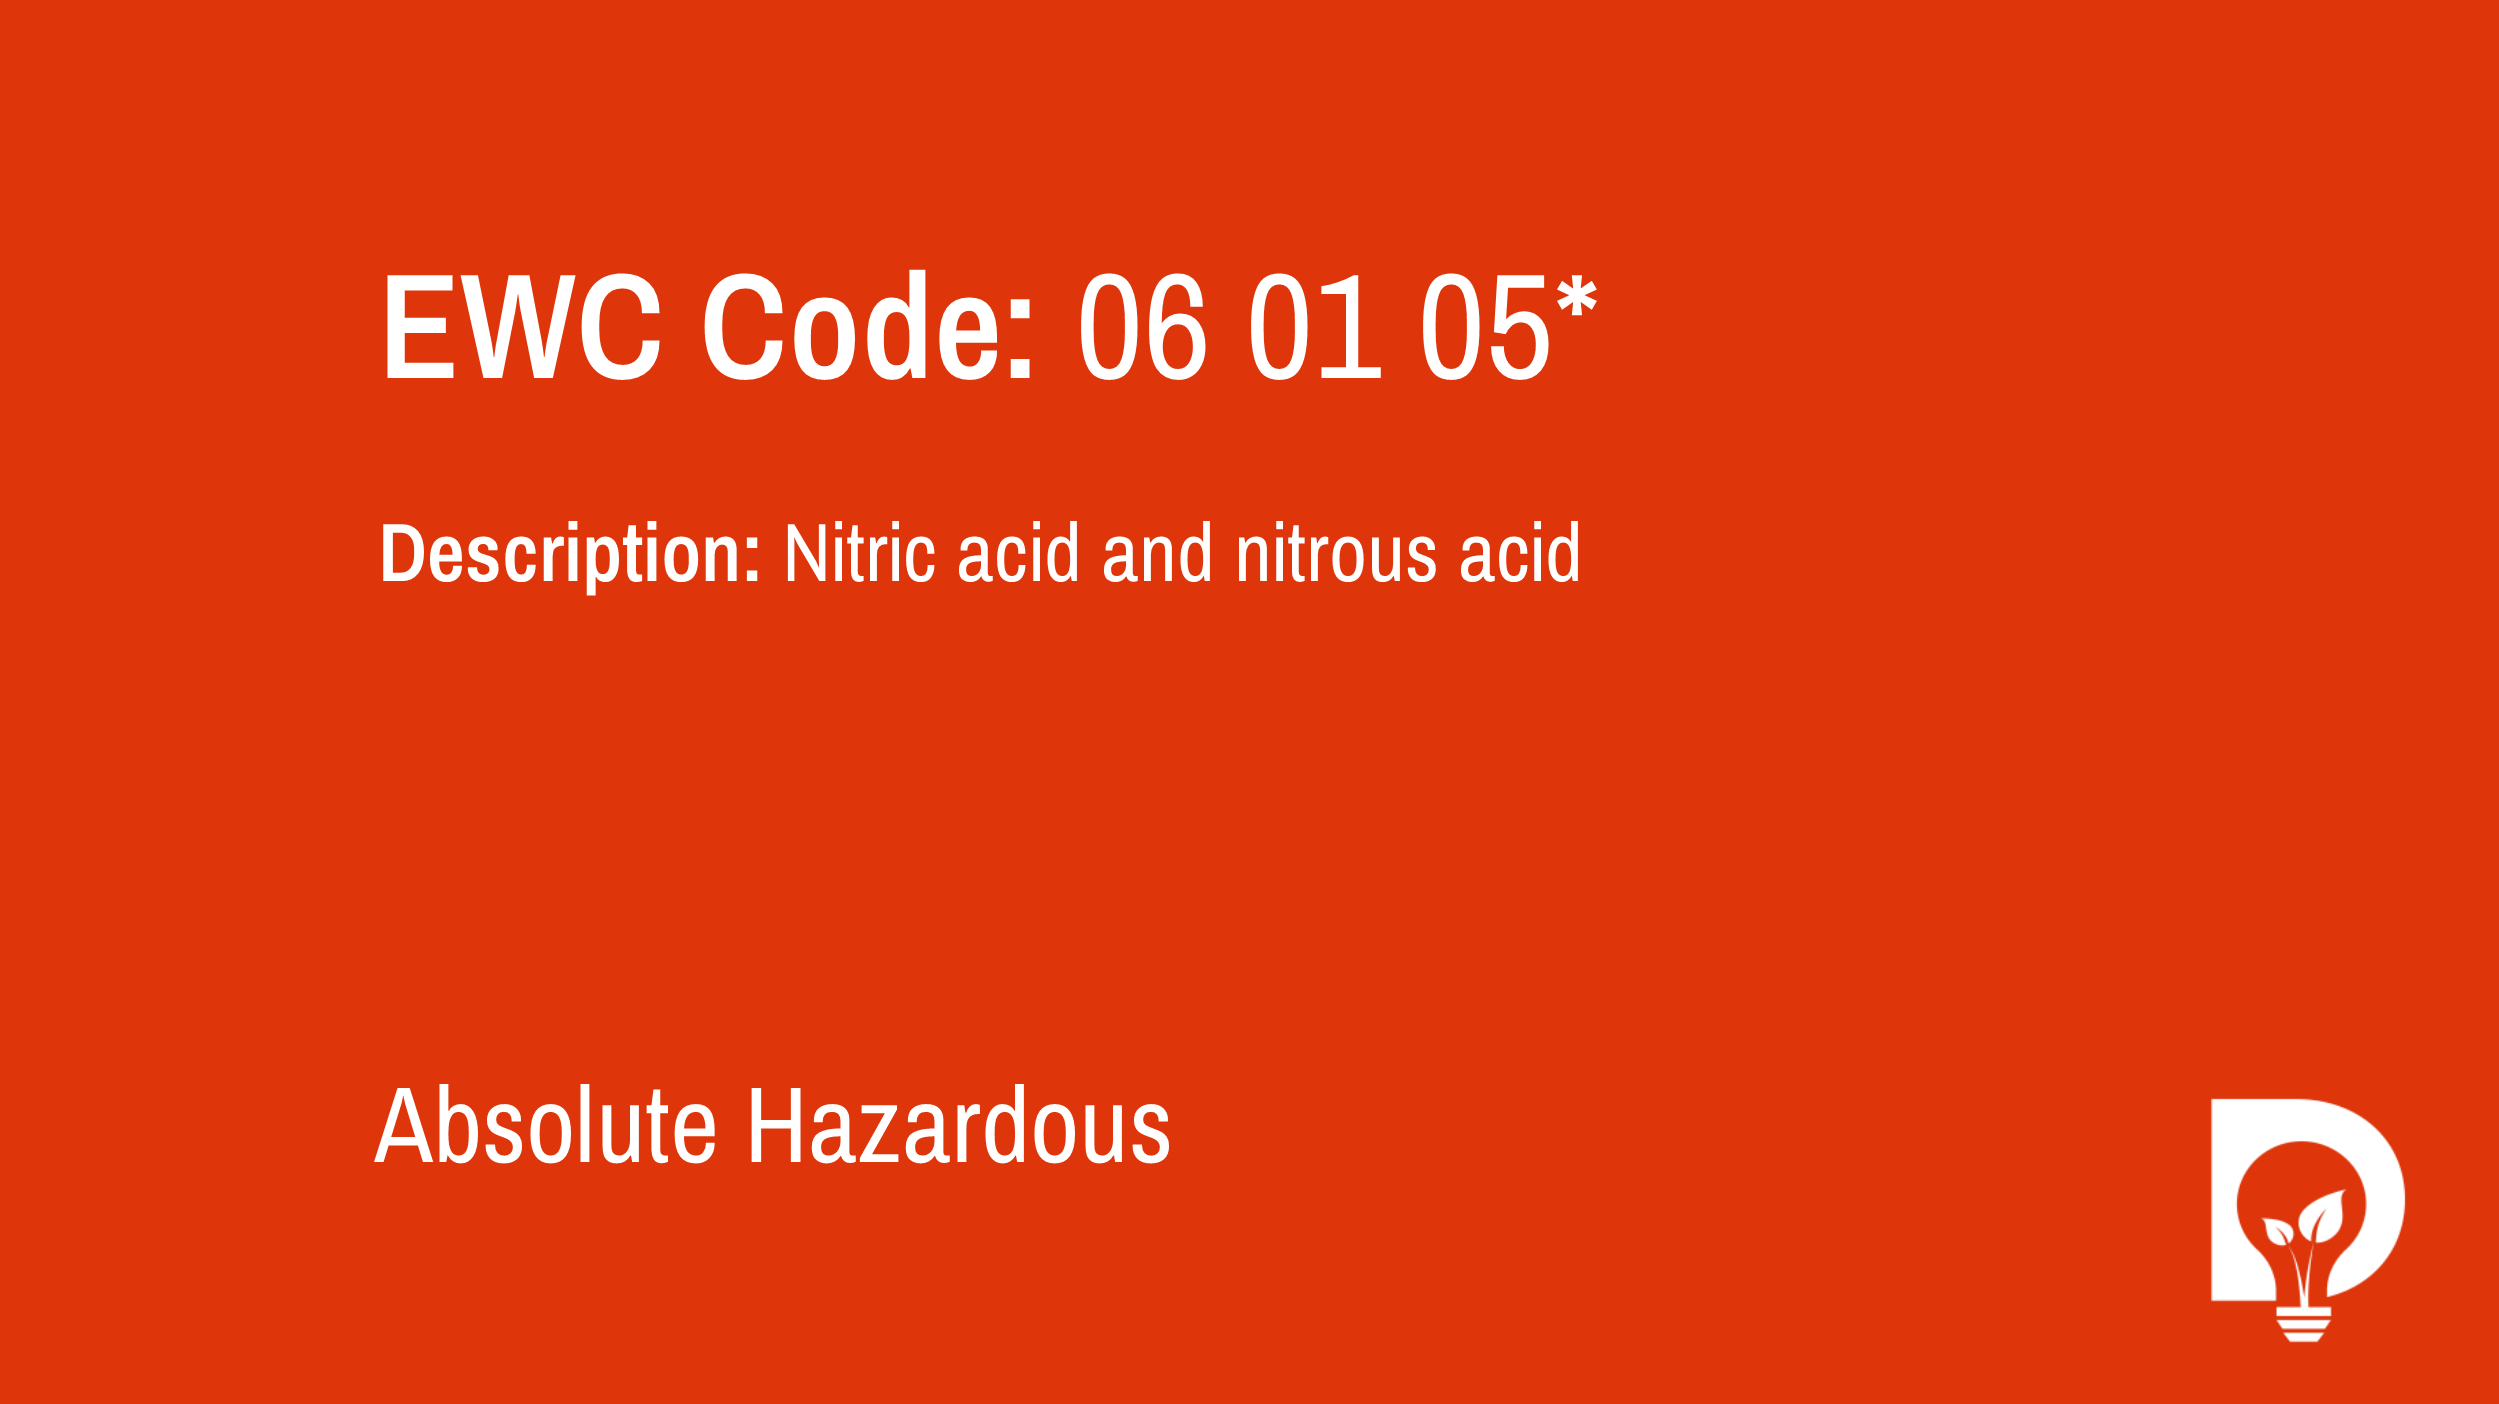 EWC Code: 06 01 05* - nitric acid and nitrous acid. Type: Absolute Hazardous. Image by Dsposal